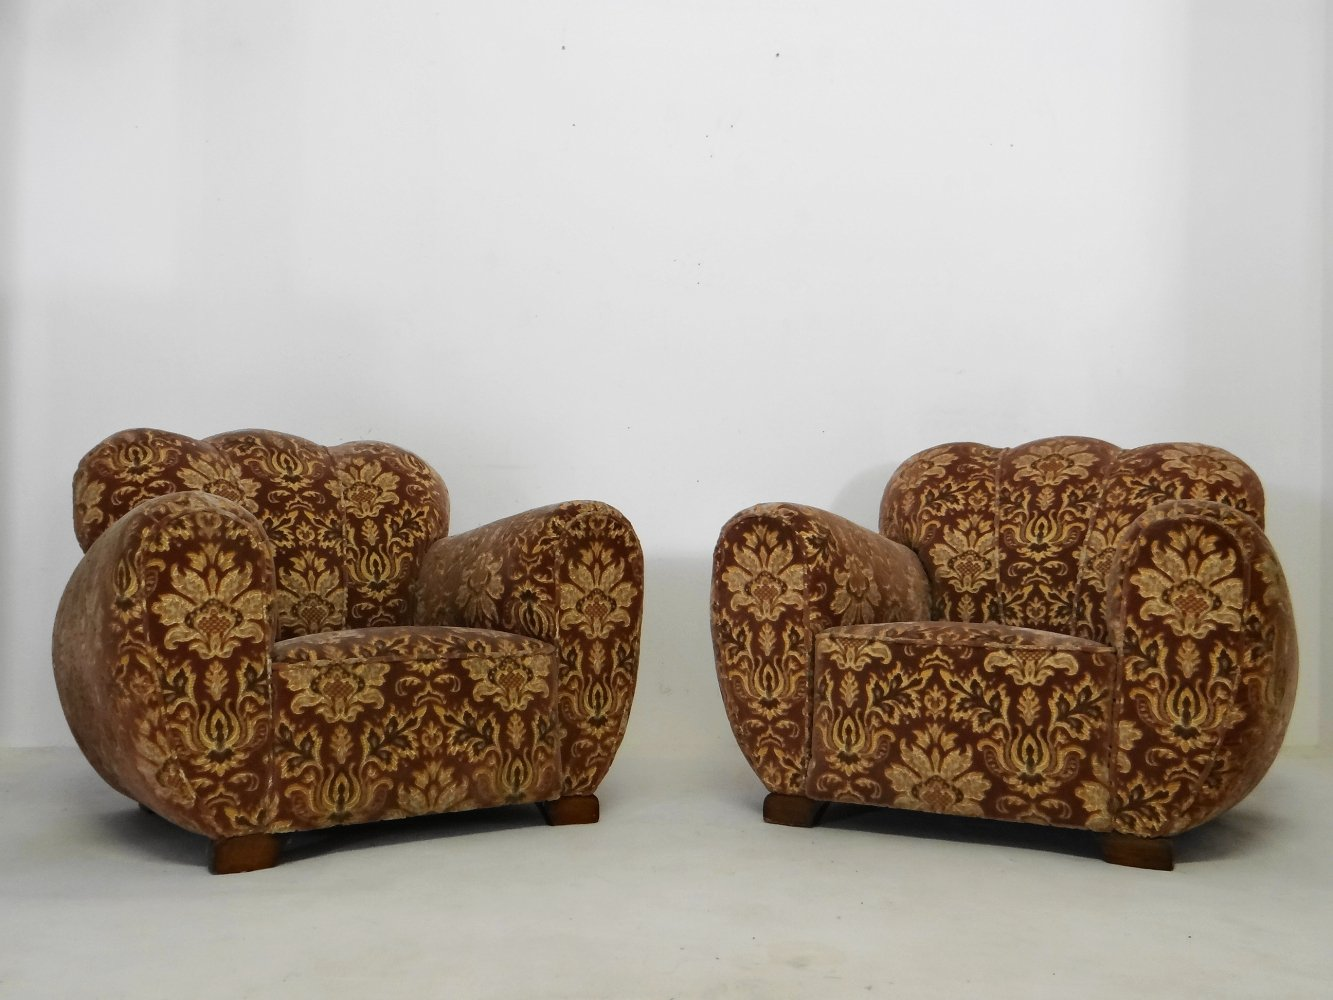 Pair of Art deco club chairs, 1930s